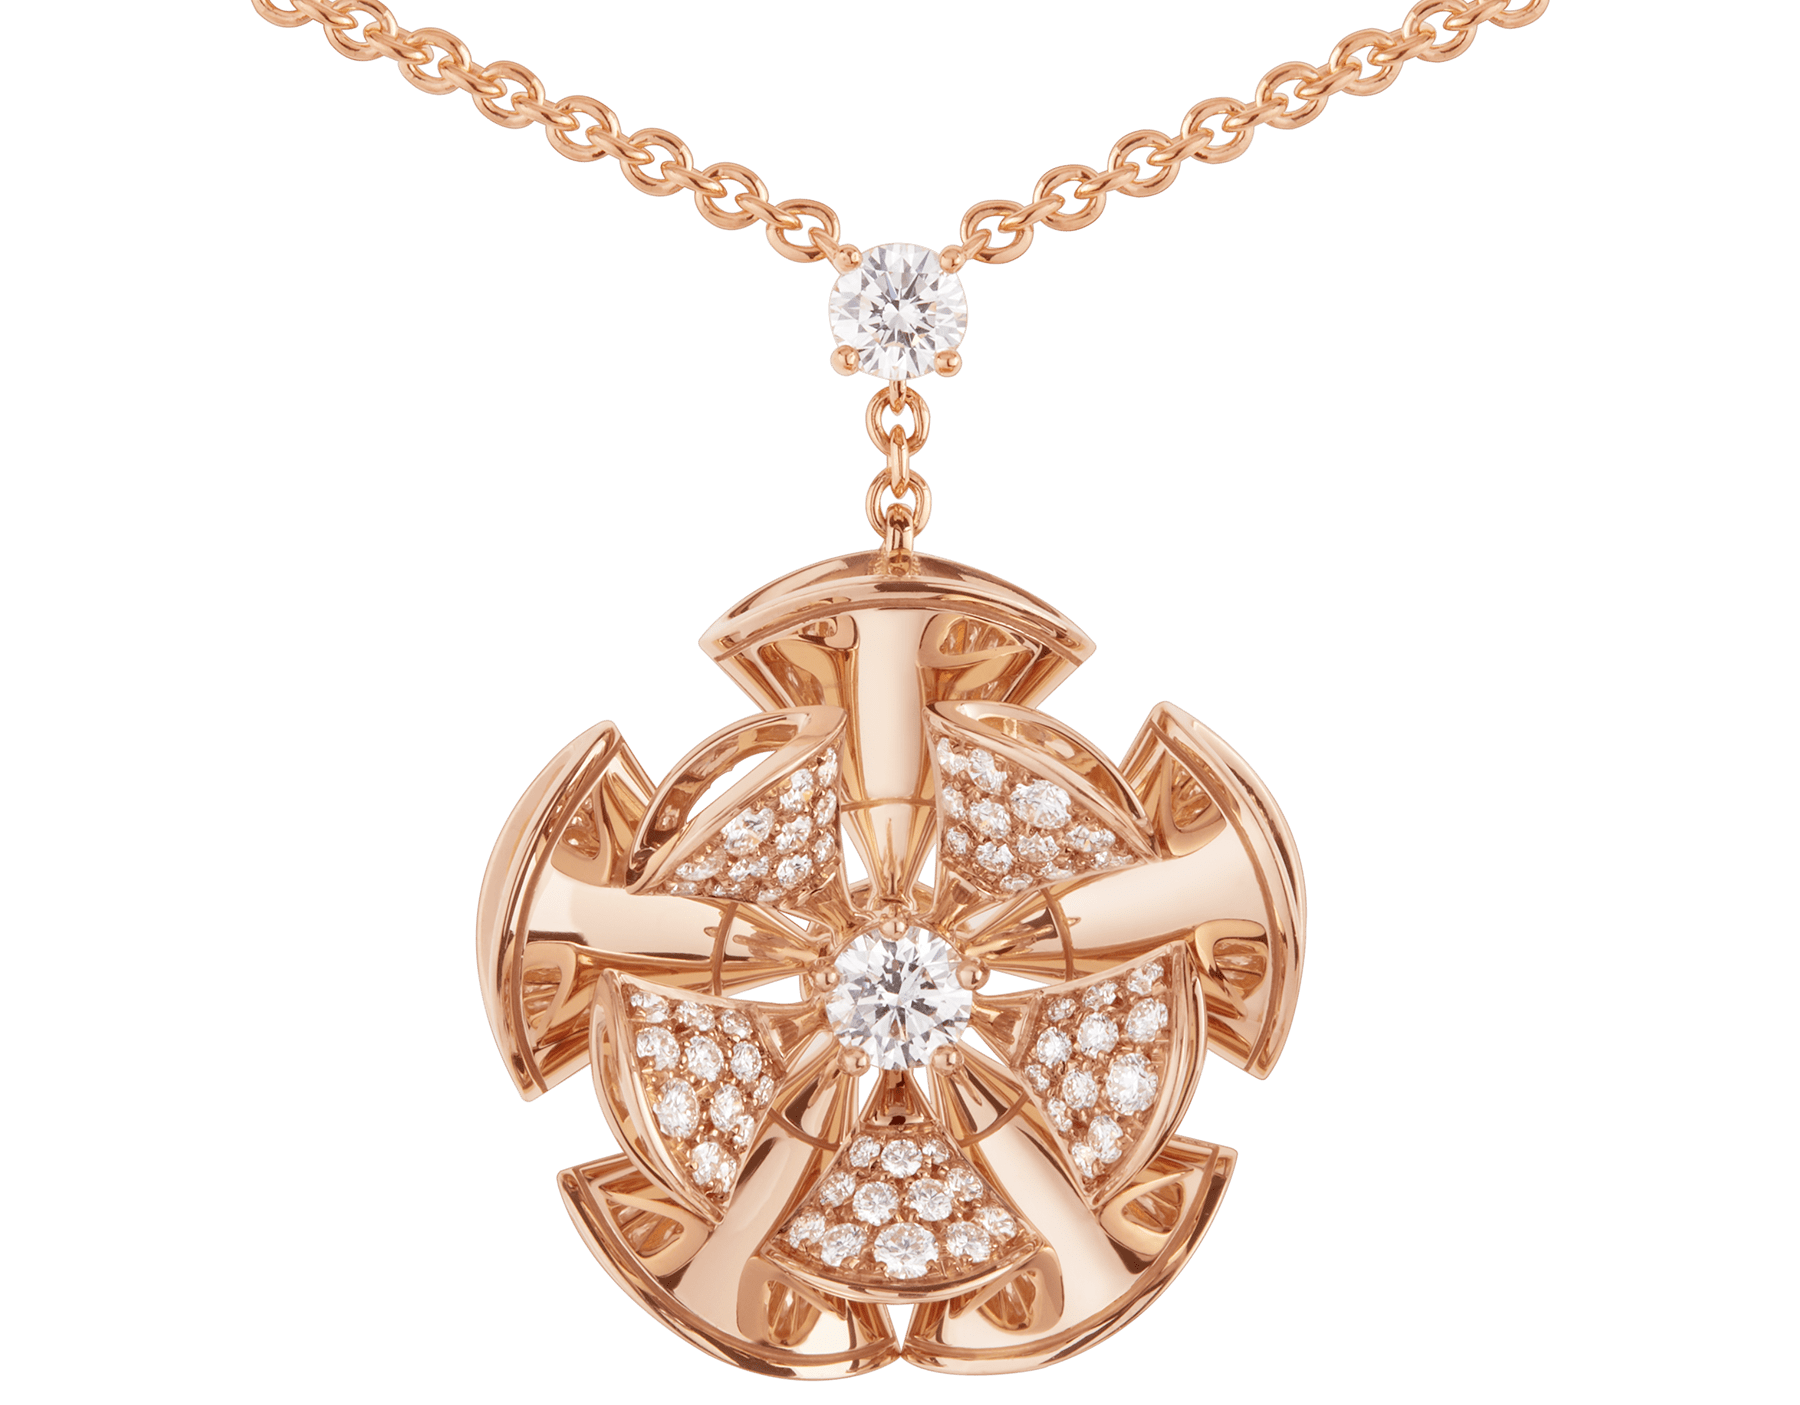 DIVAS' DREAM necklace in 18 kt rose gold with a diamond on the chain and 18 kt rose gold pendant set with central diamond and pavé diamonds. 350783 image 3